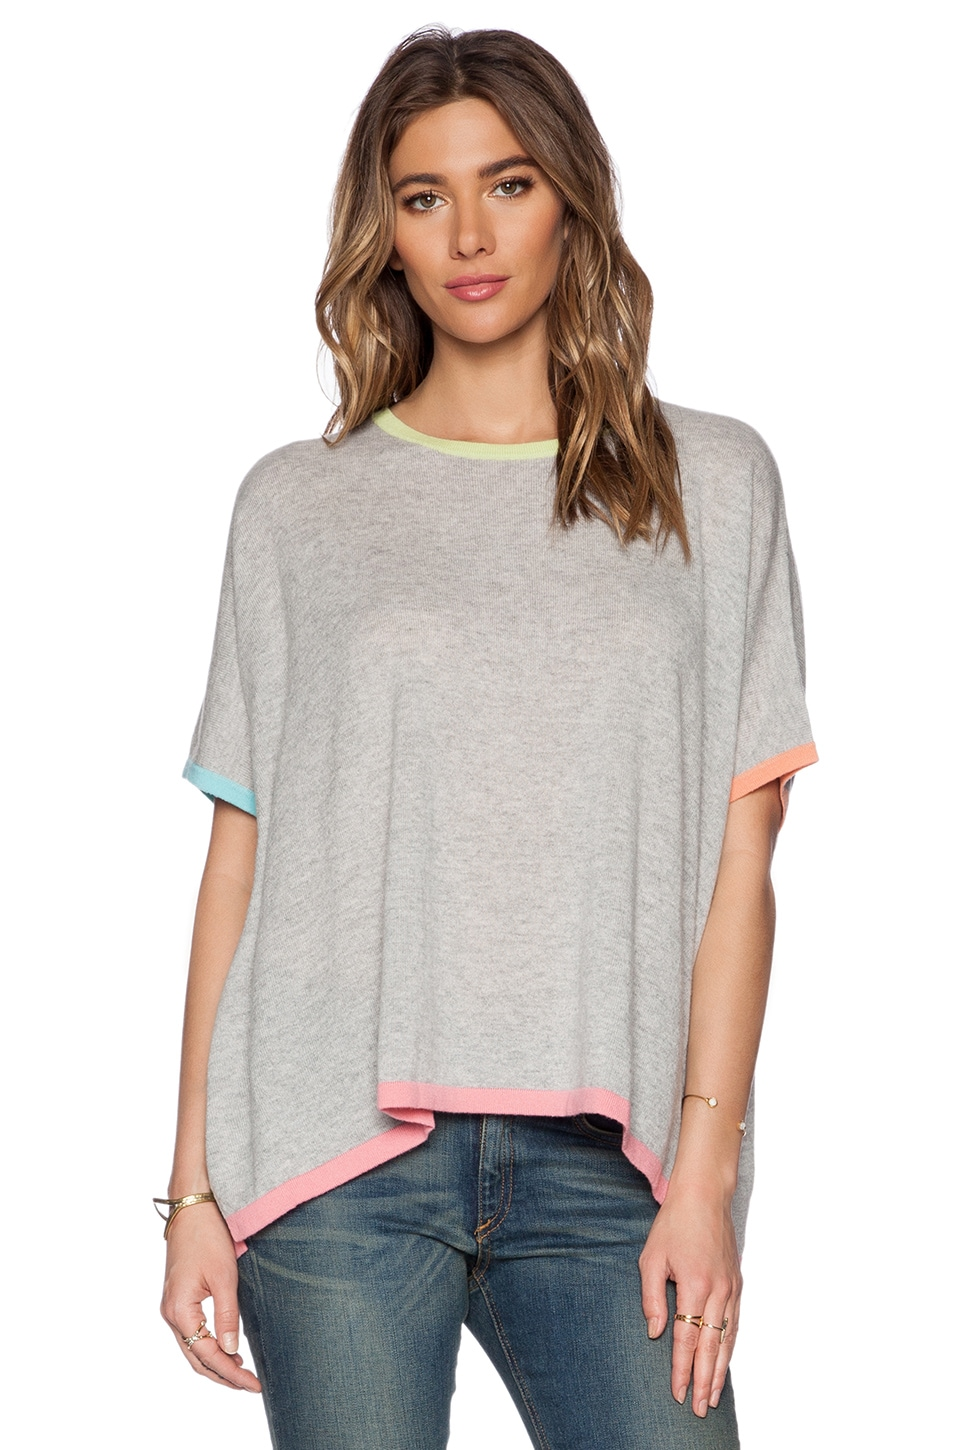 Autumn Cashmere Rectangle Sweater in Fog Multi